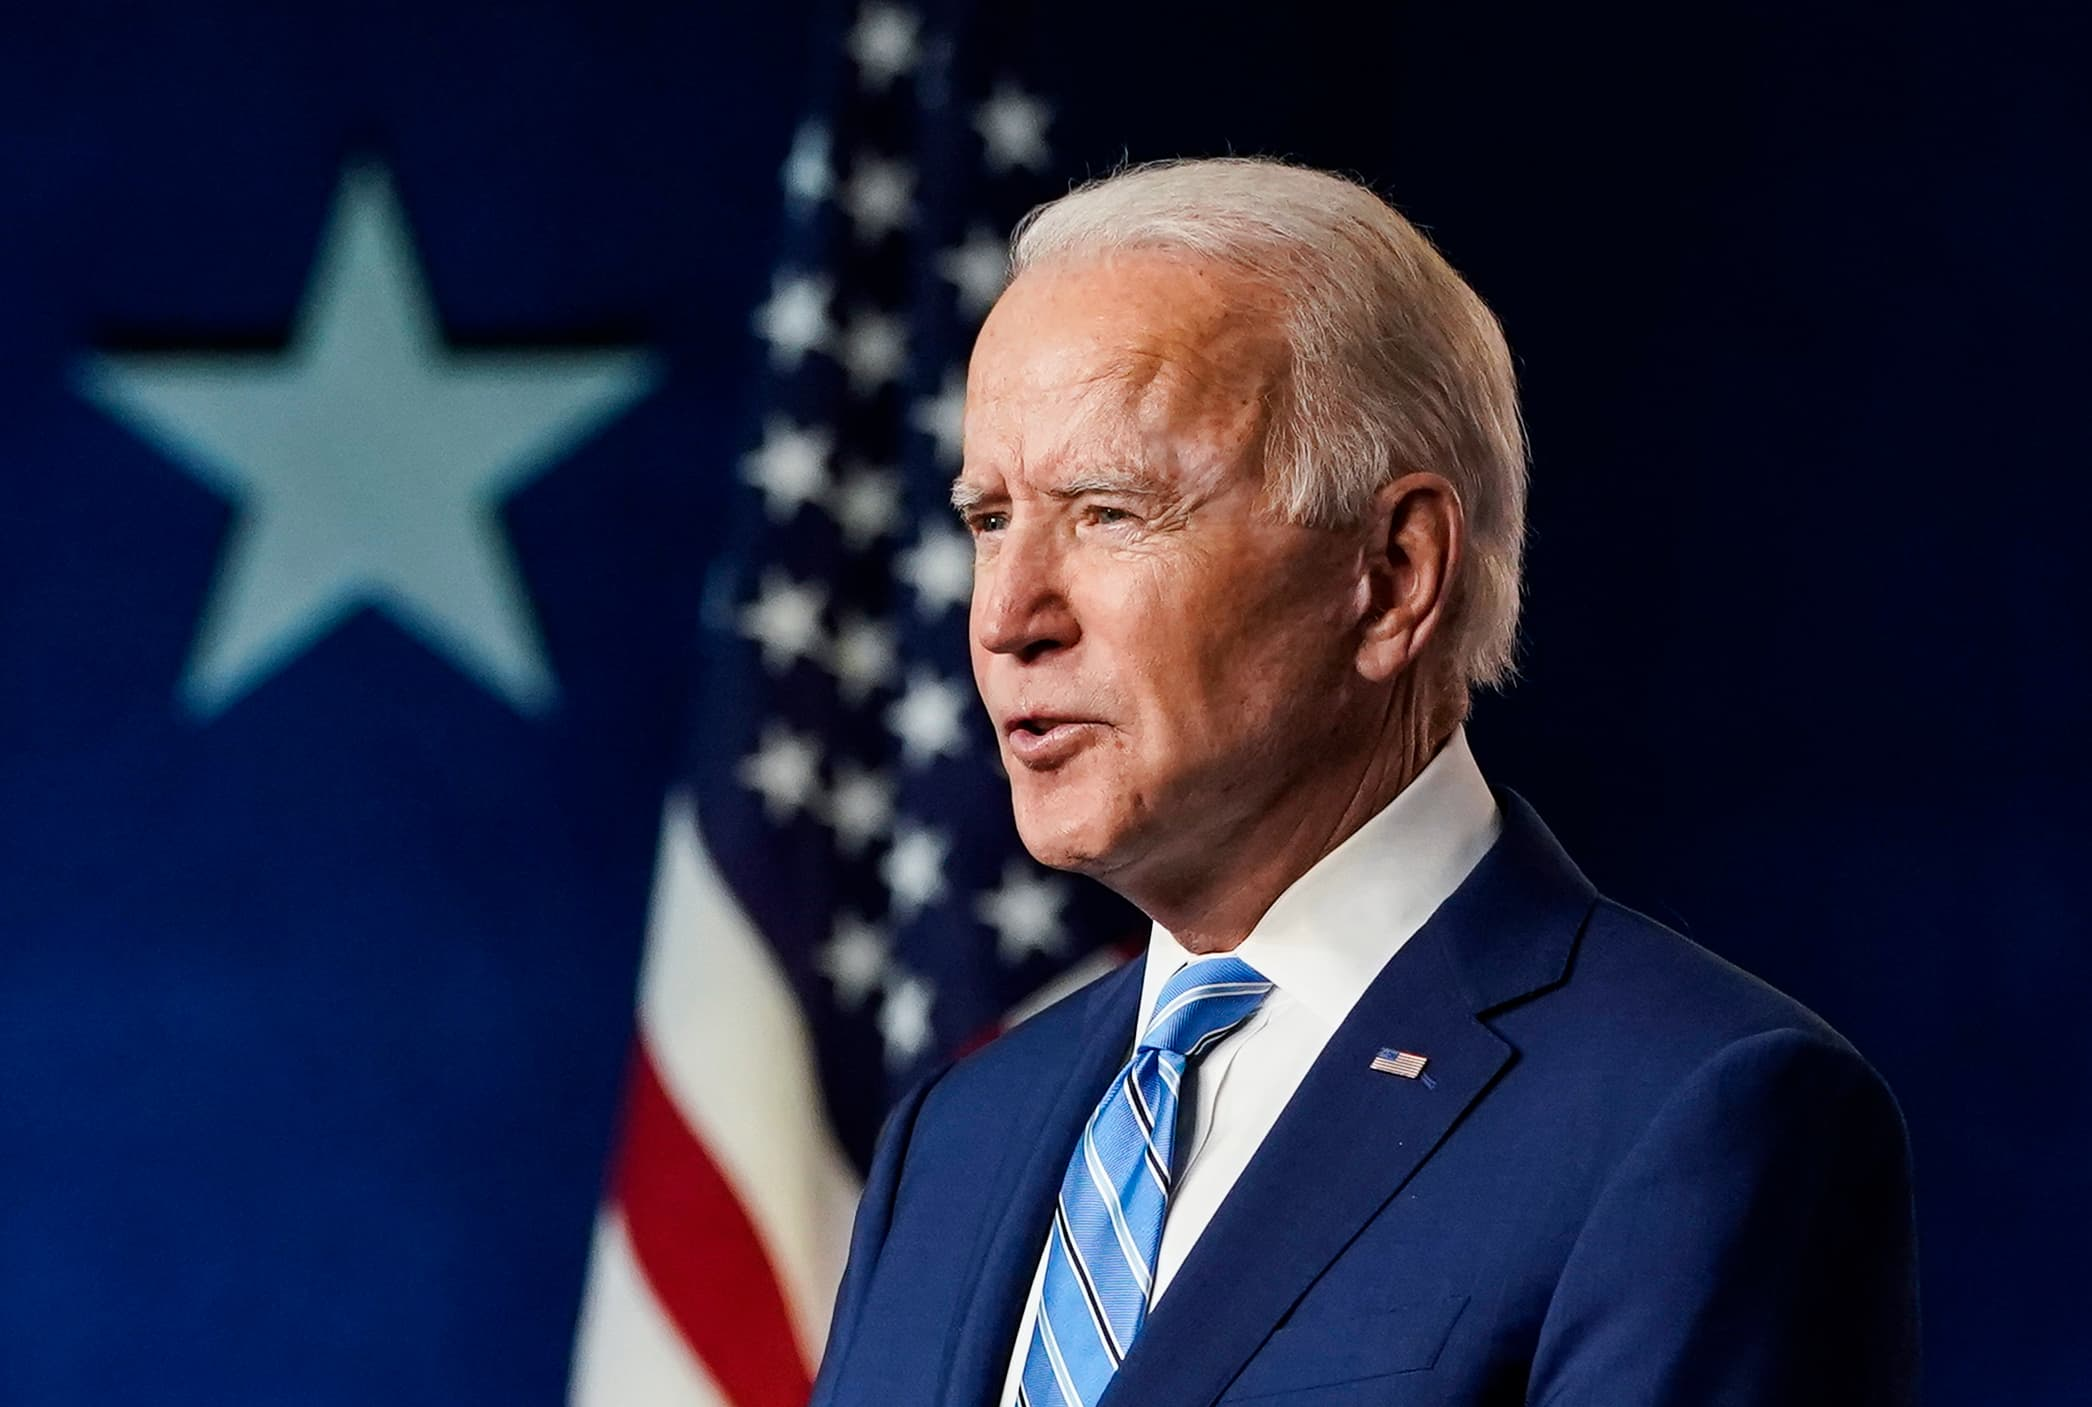 Biden will likely continue to champion strong ties with India